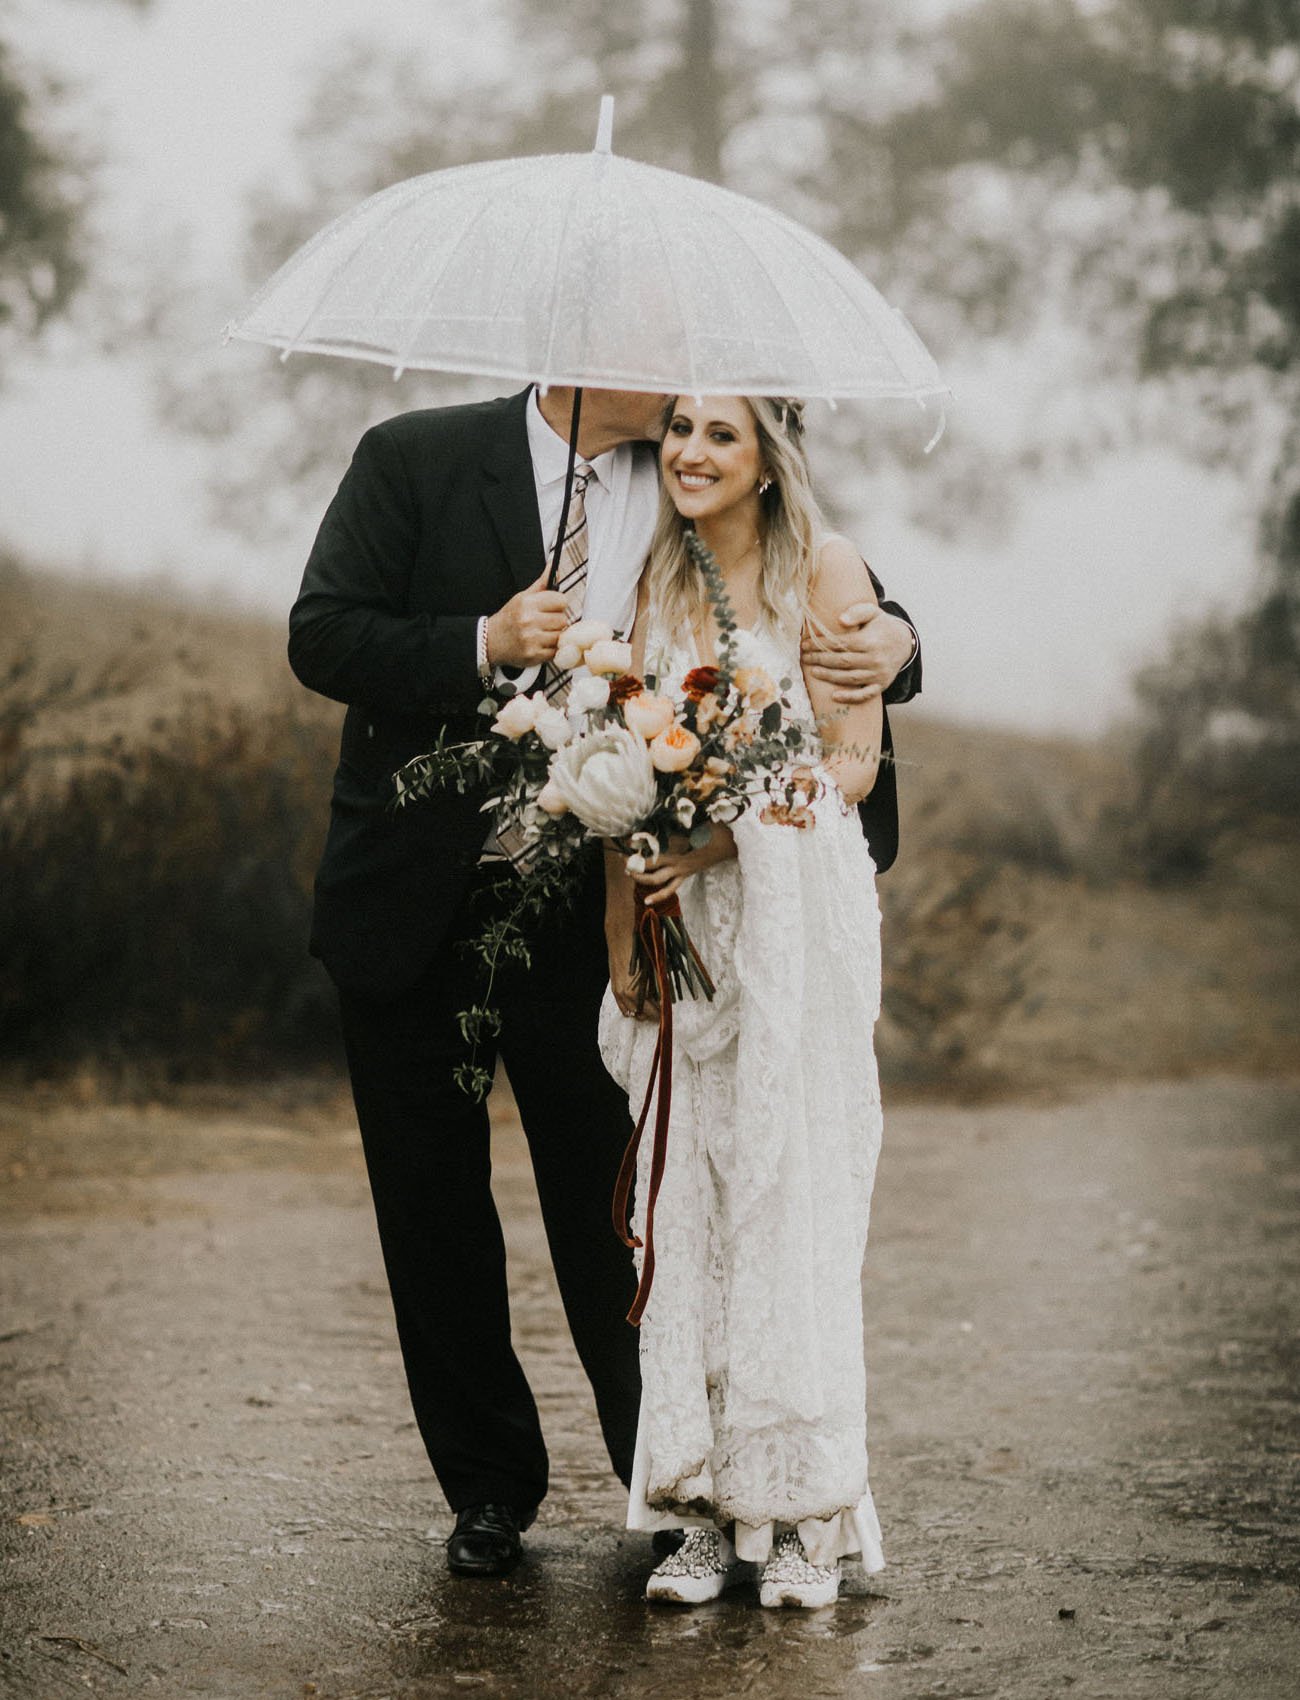 Rainy Boho Temecula Wedding